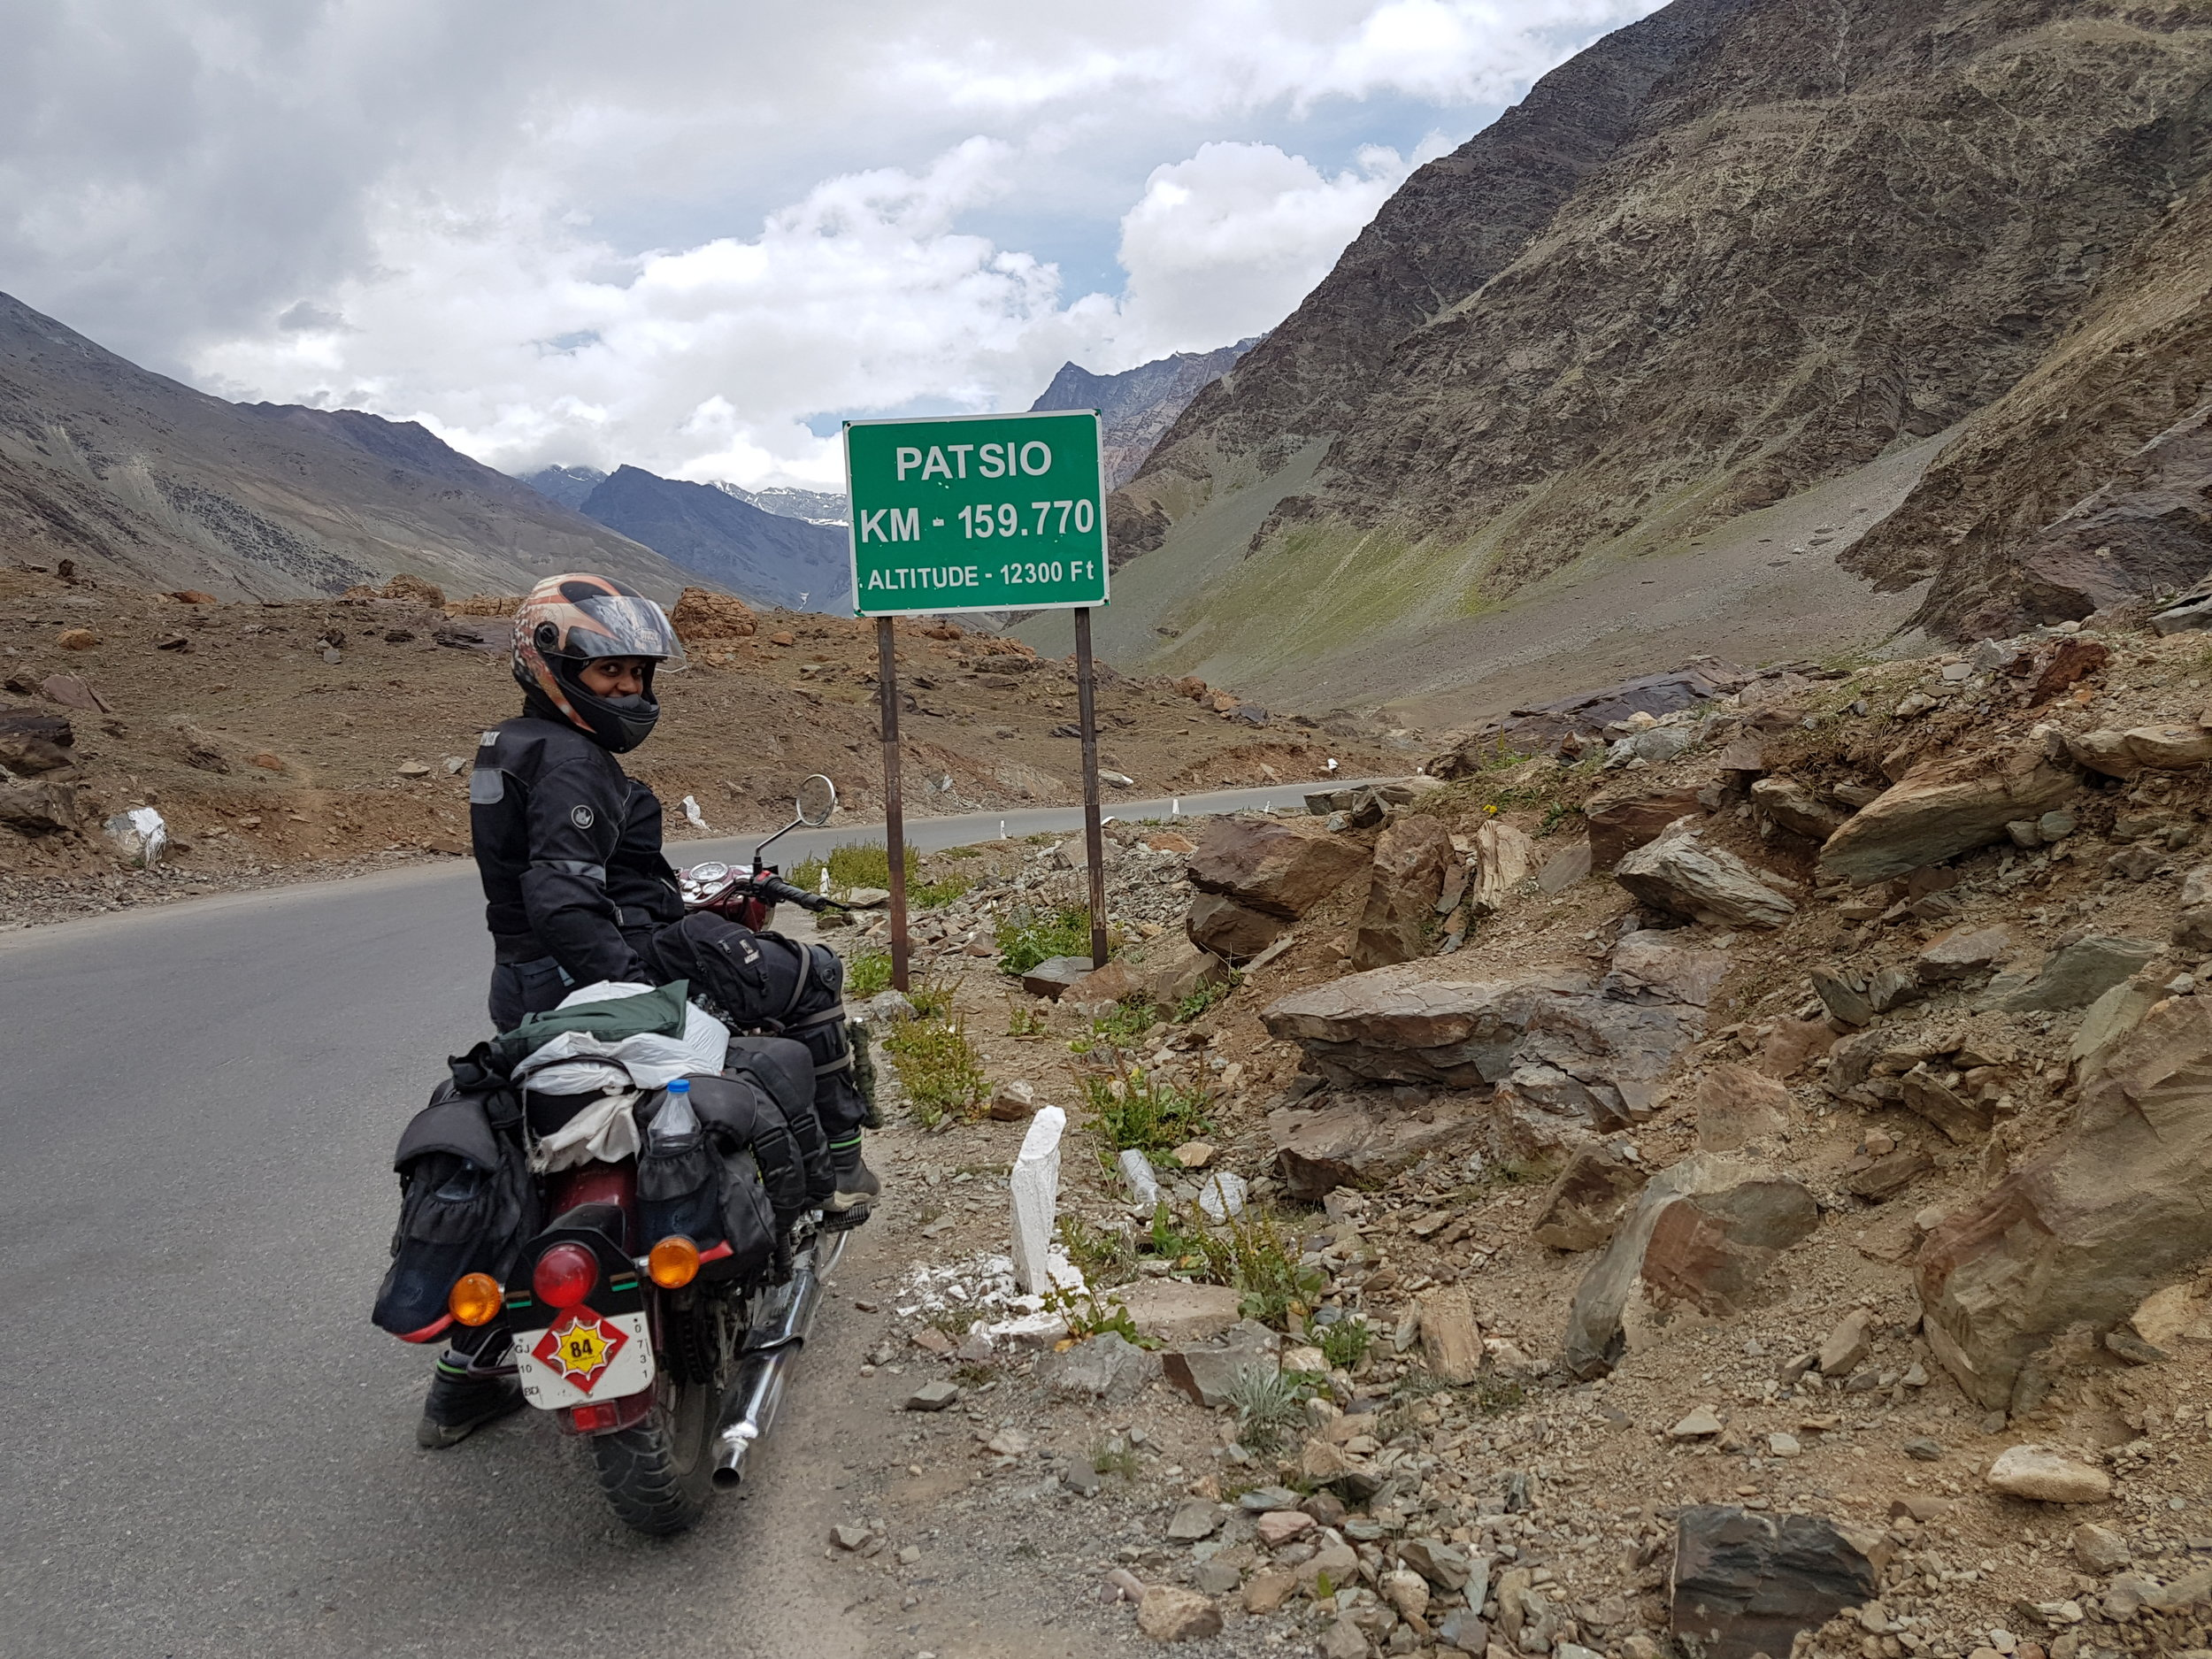 Me, my bike and the lonely road